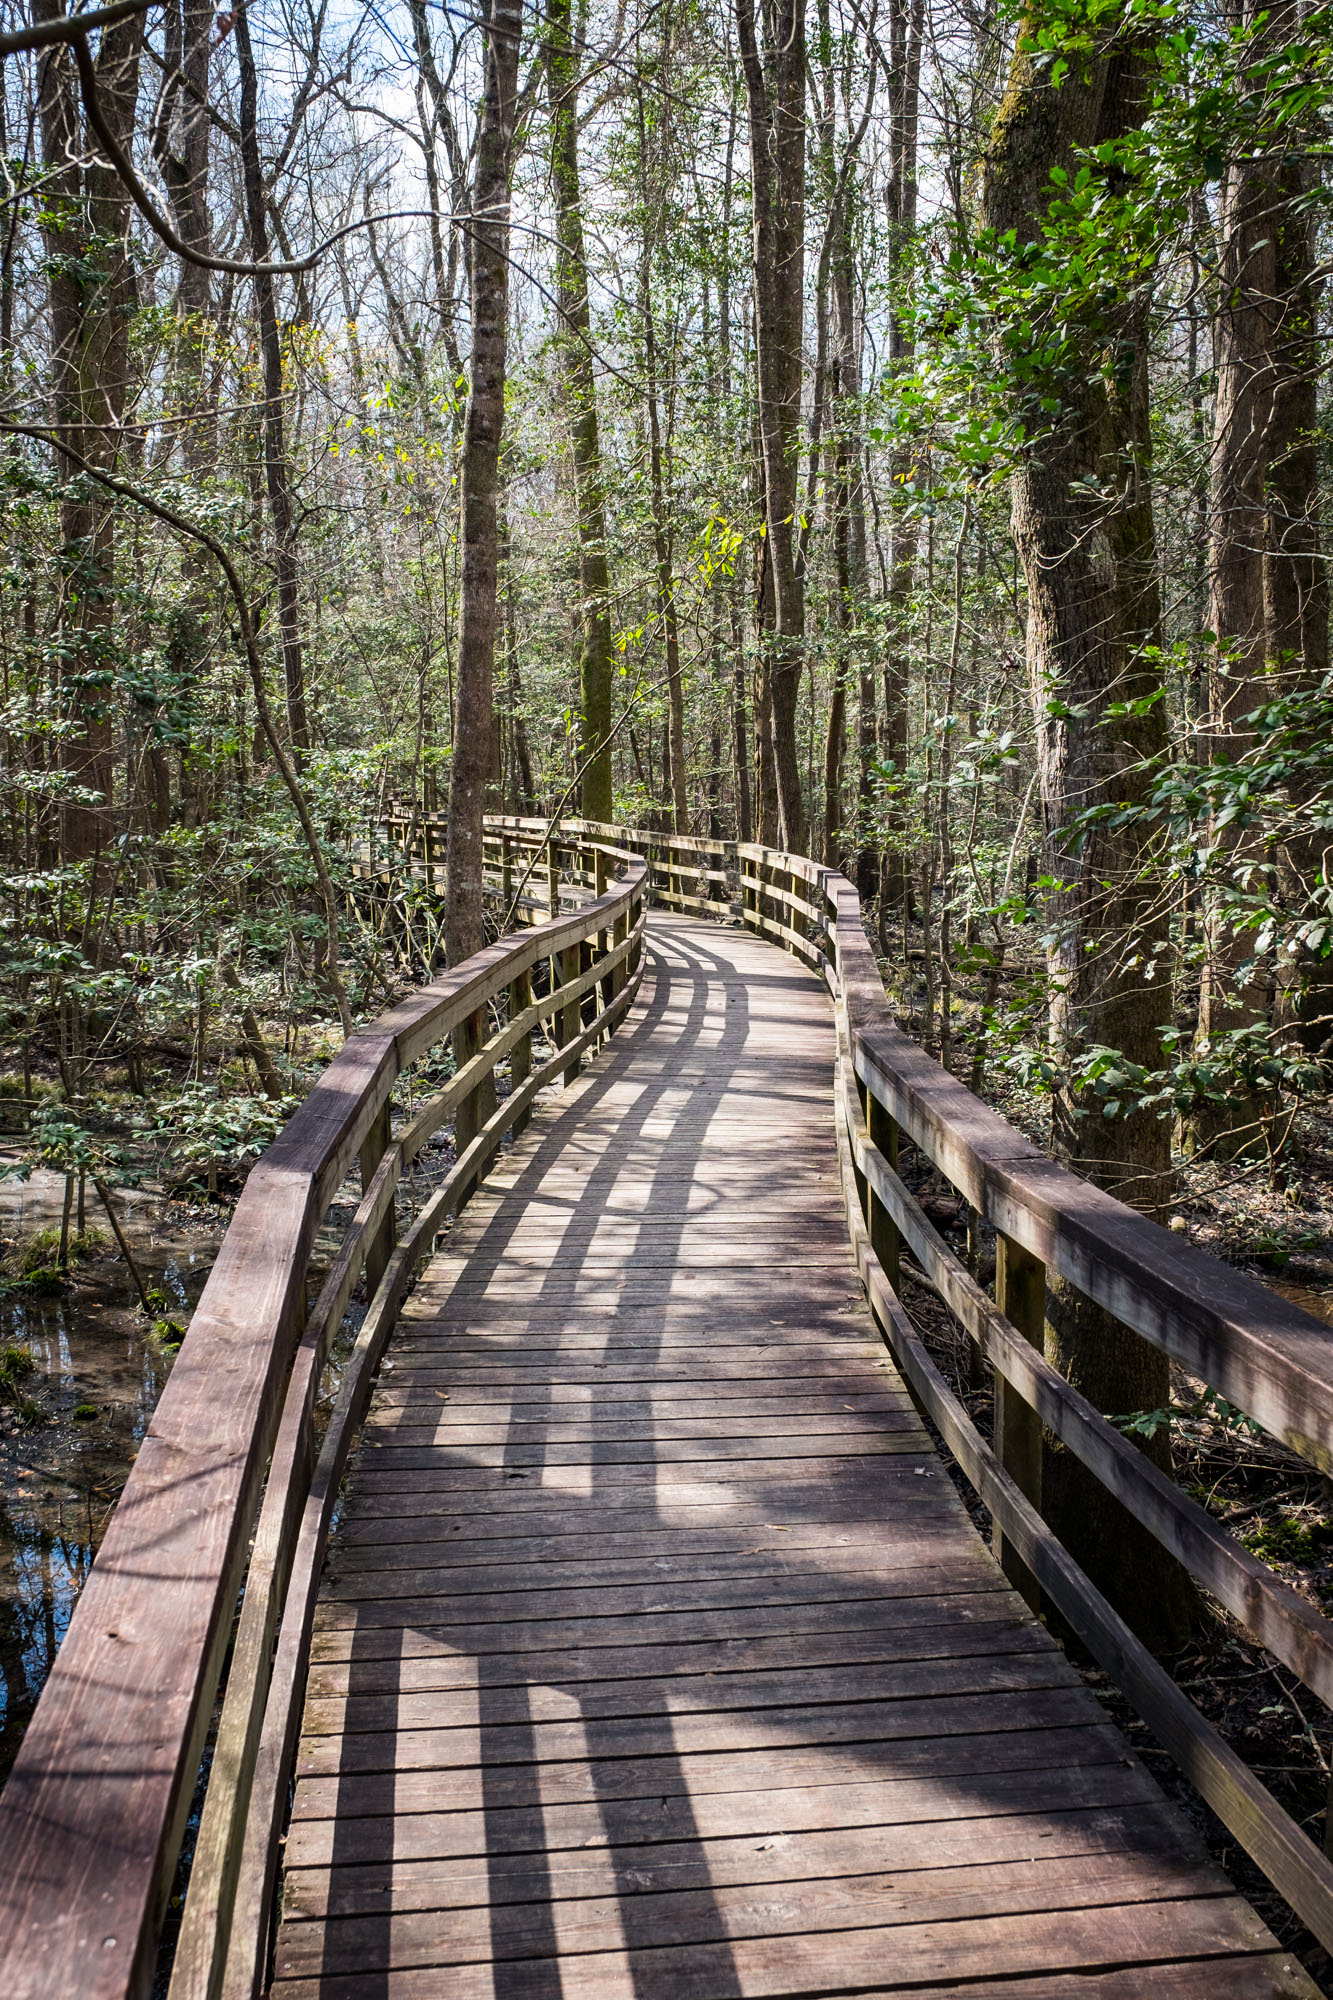 Most people will walk the elevated boardwalk, which is a 2.4 mile loop.